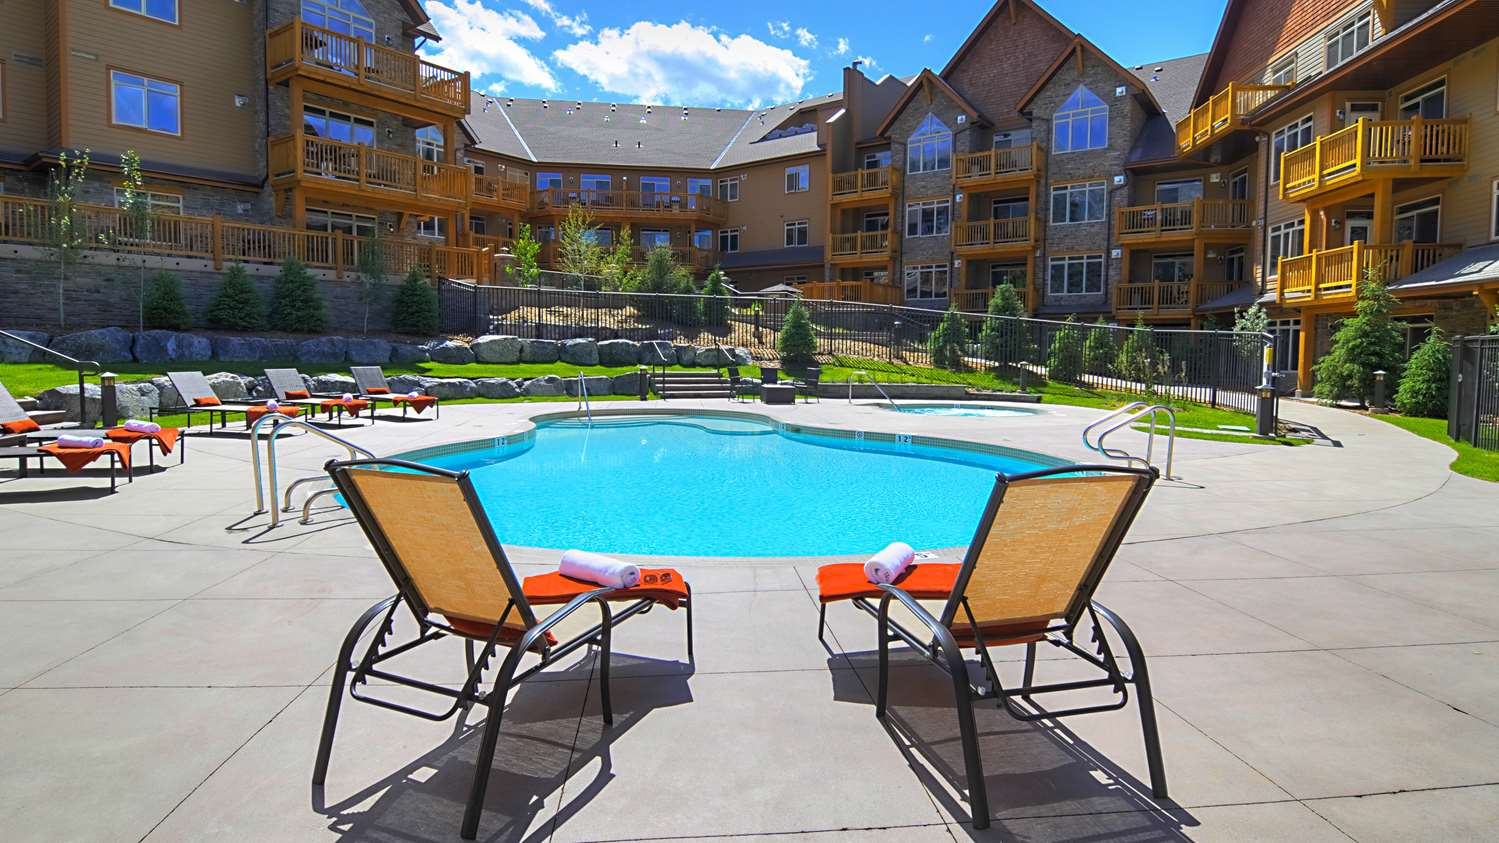 stoneridge mountain resort canmore, ab - see discounts